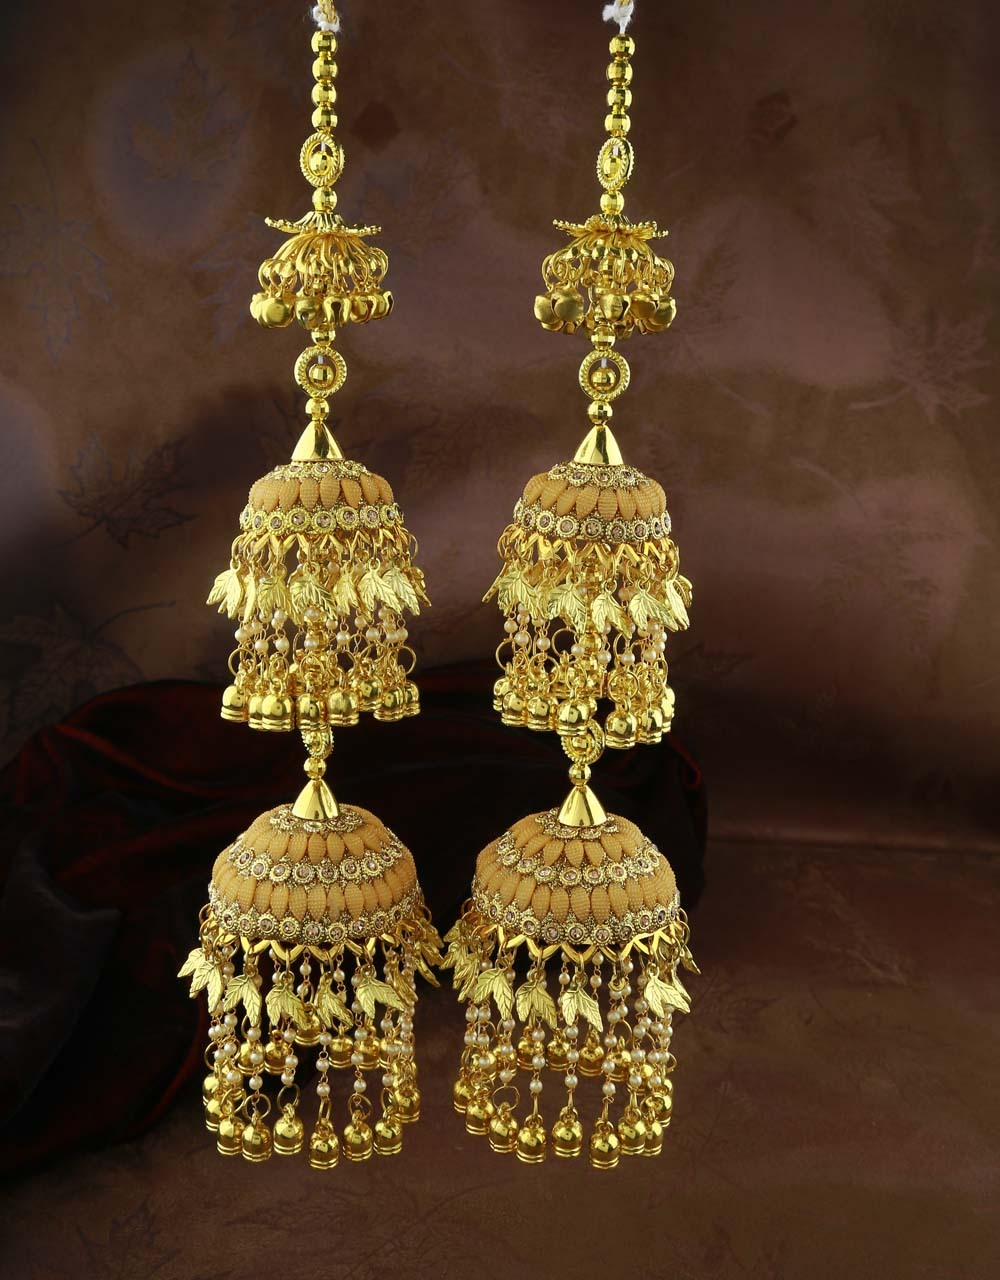 Double Layer Stunning Pair of Kalira for Women with Hanging Droplets